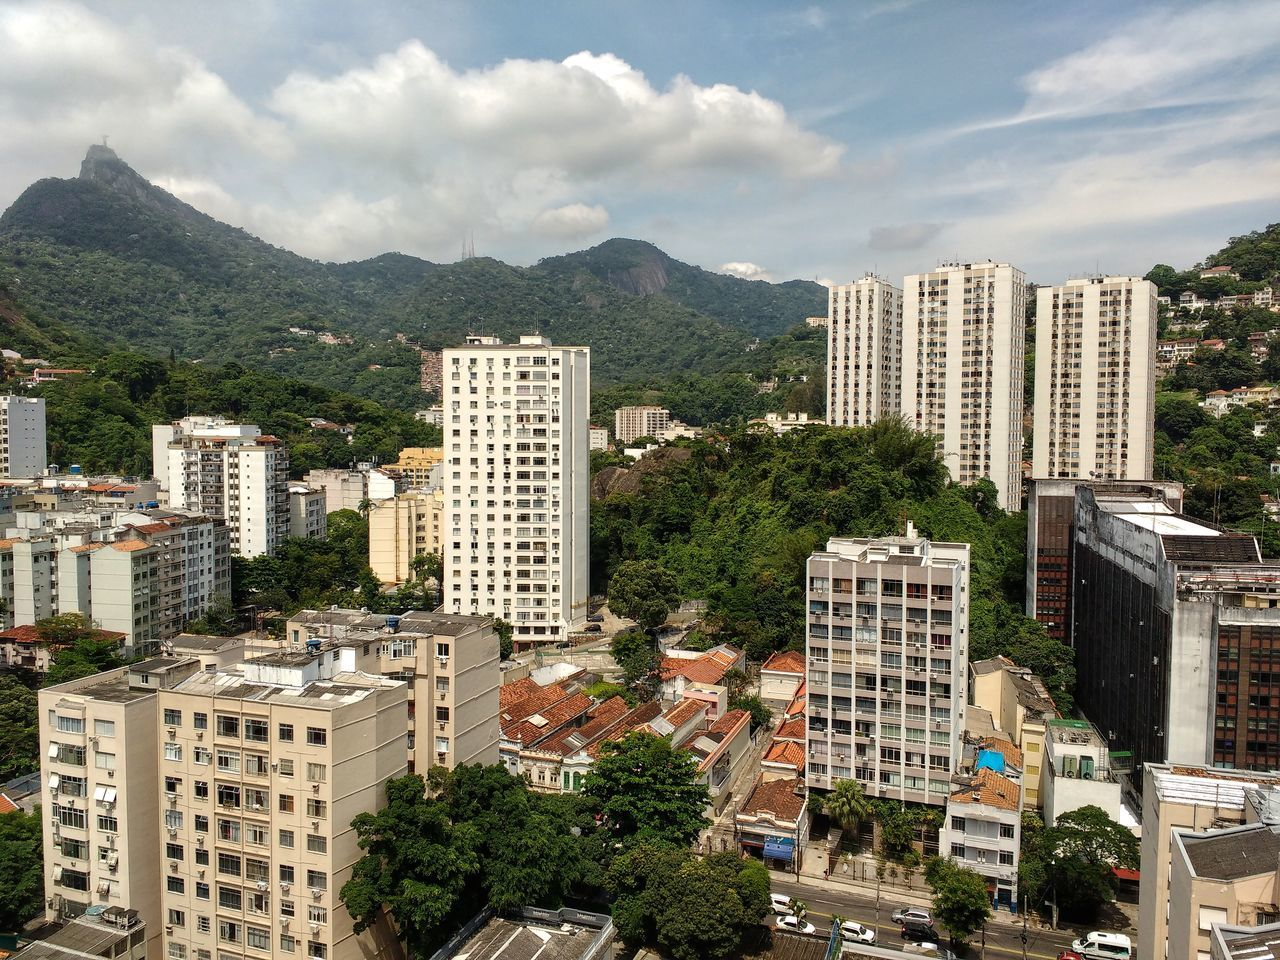 Architecture Cityscape City Skyscraper Building Exterior Urban Skyline No People Mountain Travel Destinations Cloud - Sky Apartment Tree Outdoors Sky Day Corcovado Contrast Panoramic High Definition Mountains Brazilian Tropical Backgrounds Full Frame HDR